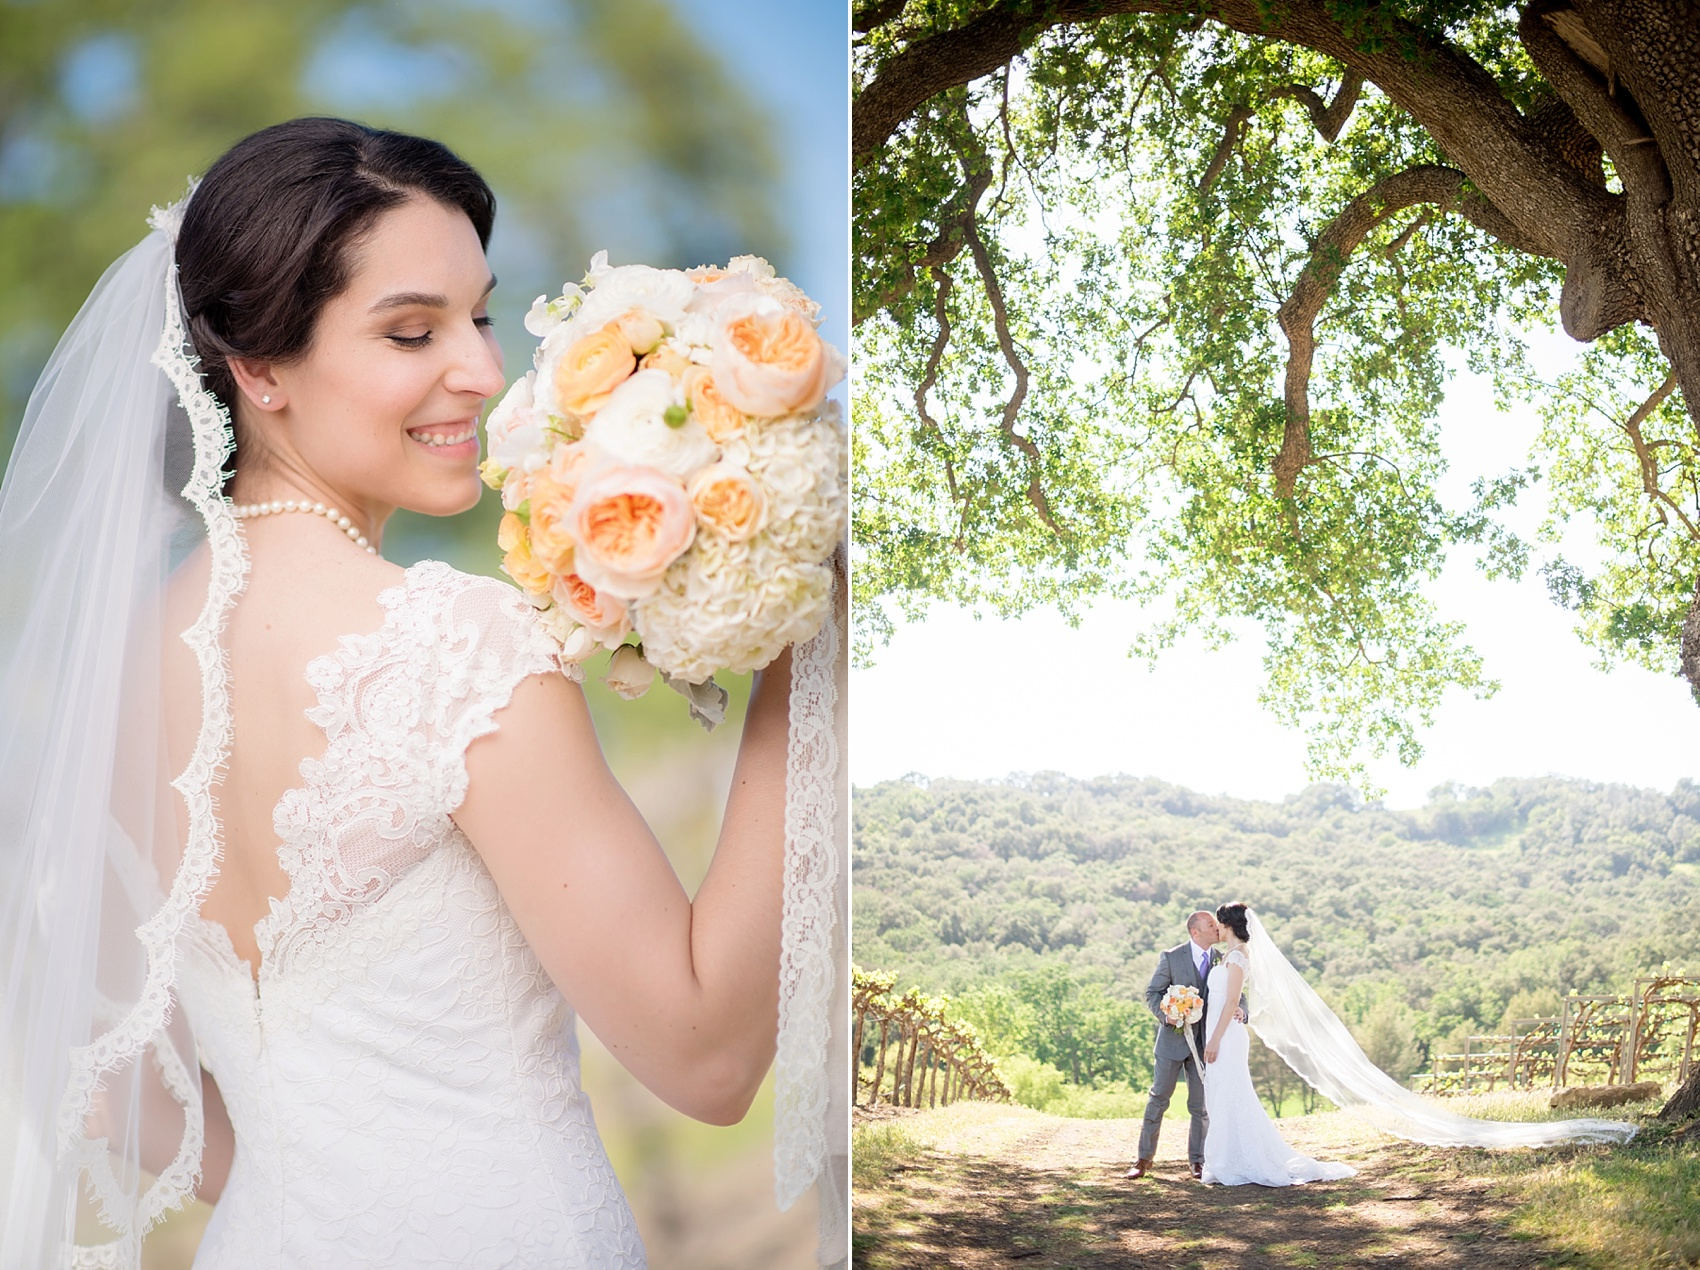 Vineyard elopement, bride and groom photos, with Mikkel Paige, destination wedding photographer. Held at HammerSky Vineyard, south of San Francisco. Bouquet of blush and white flowers tied with lace.